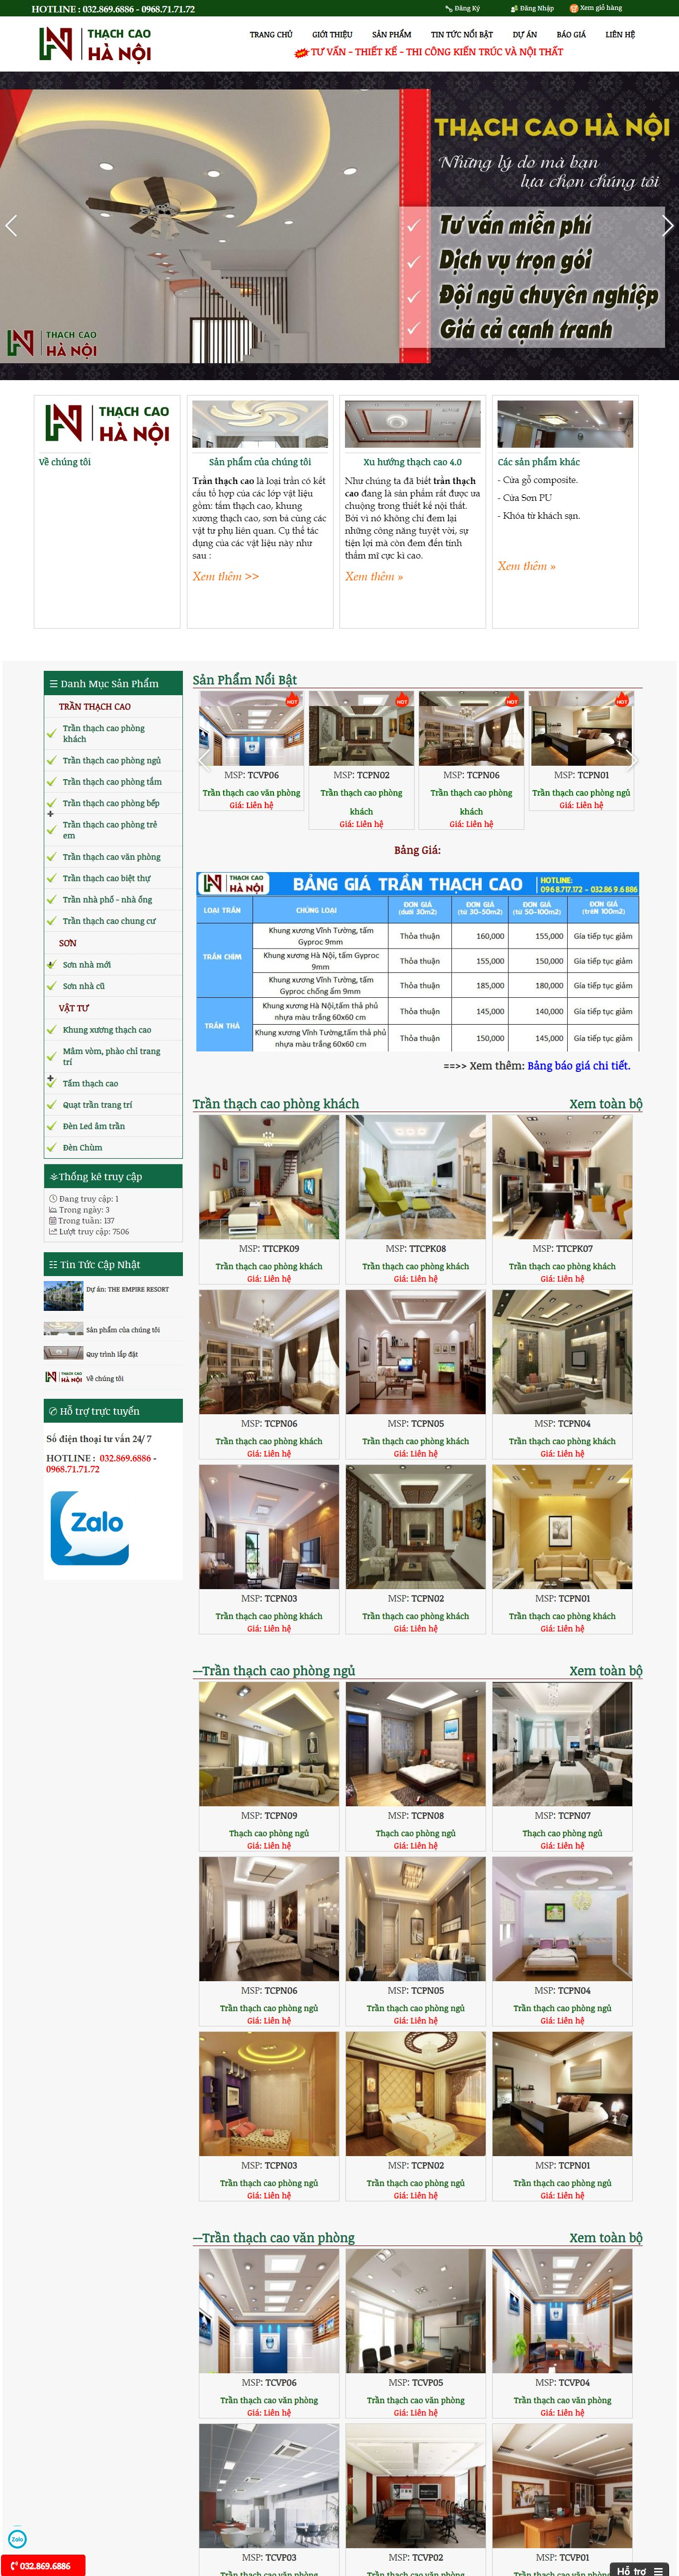 Thiết kế Website trần thạch cao - thachcaohanoi.info